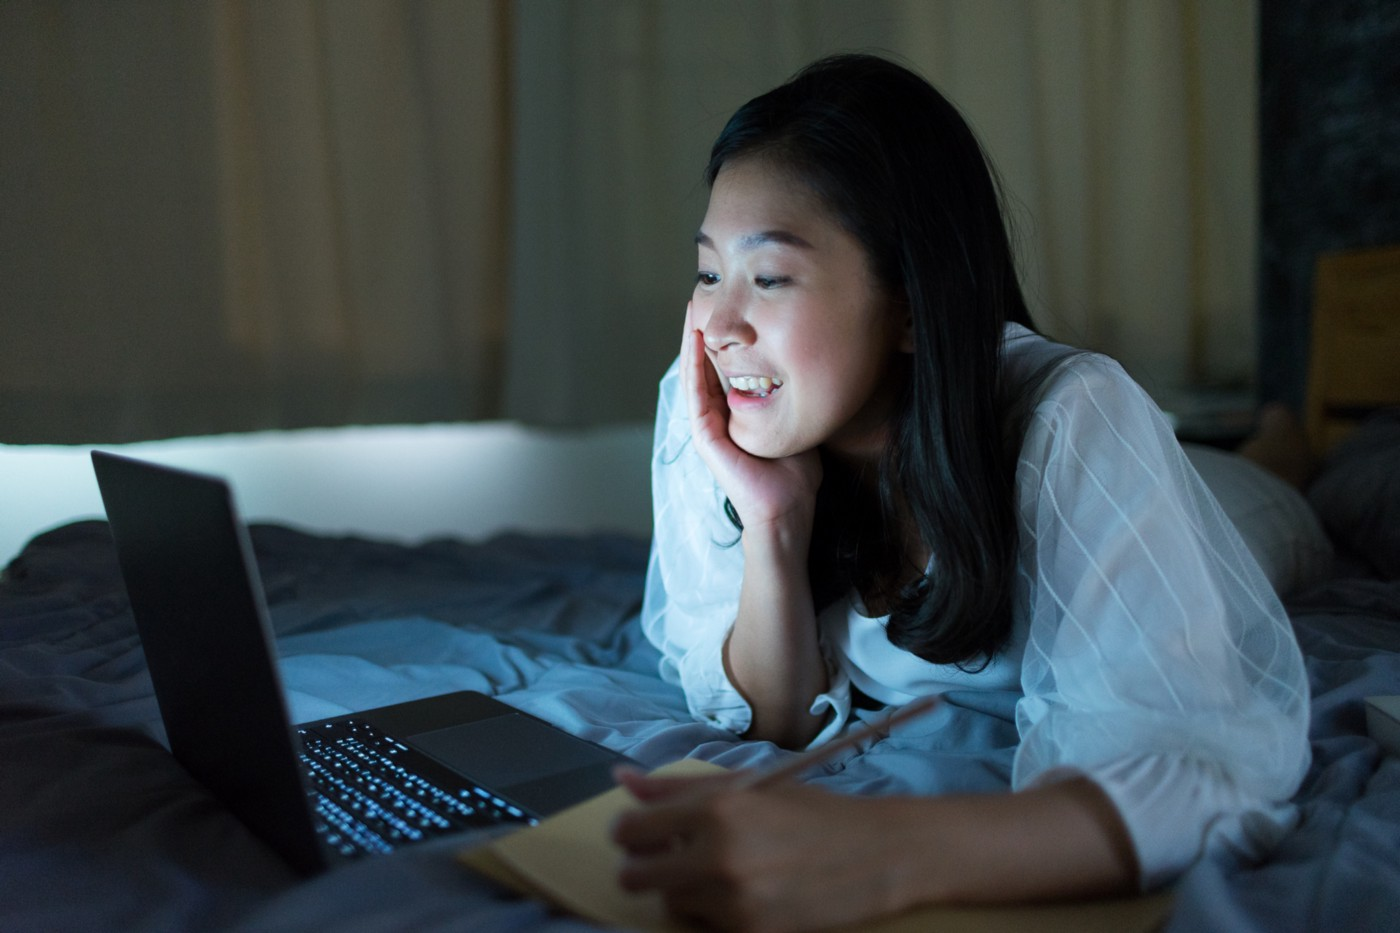 Asian woman writing a note while looking at her laptop with a smile.